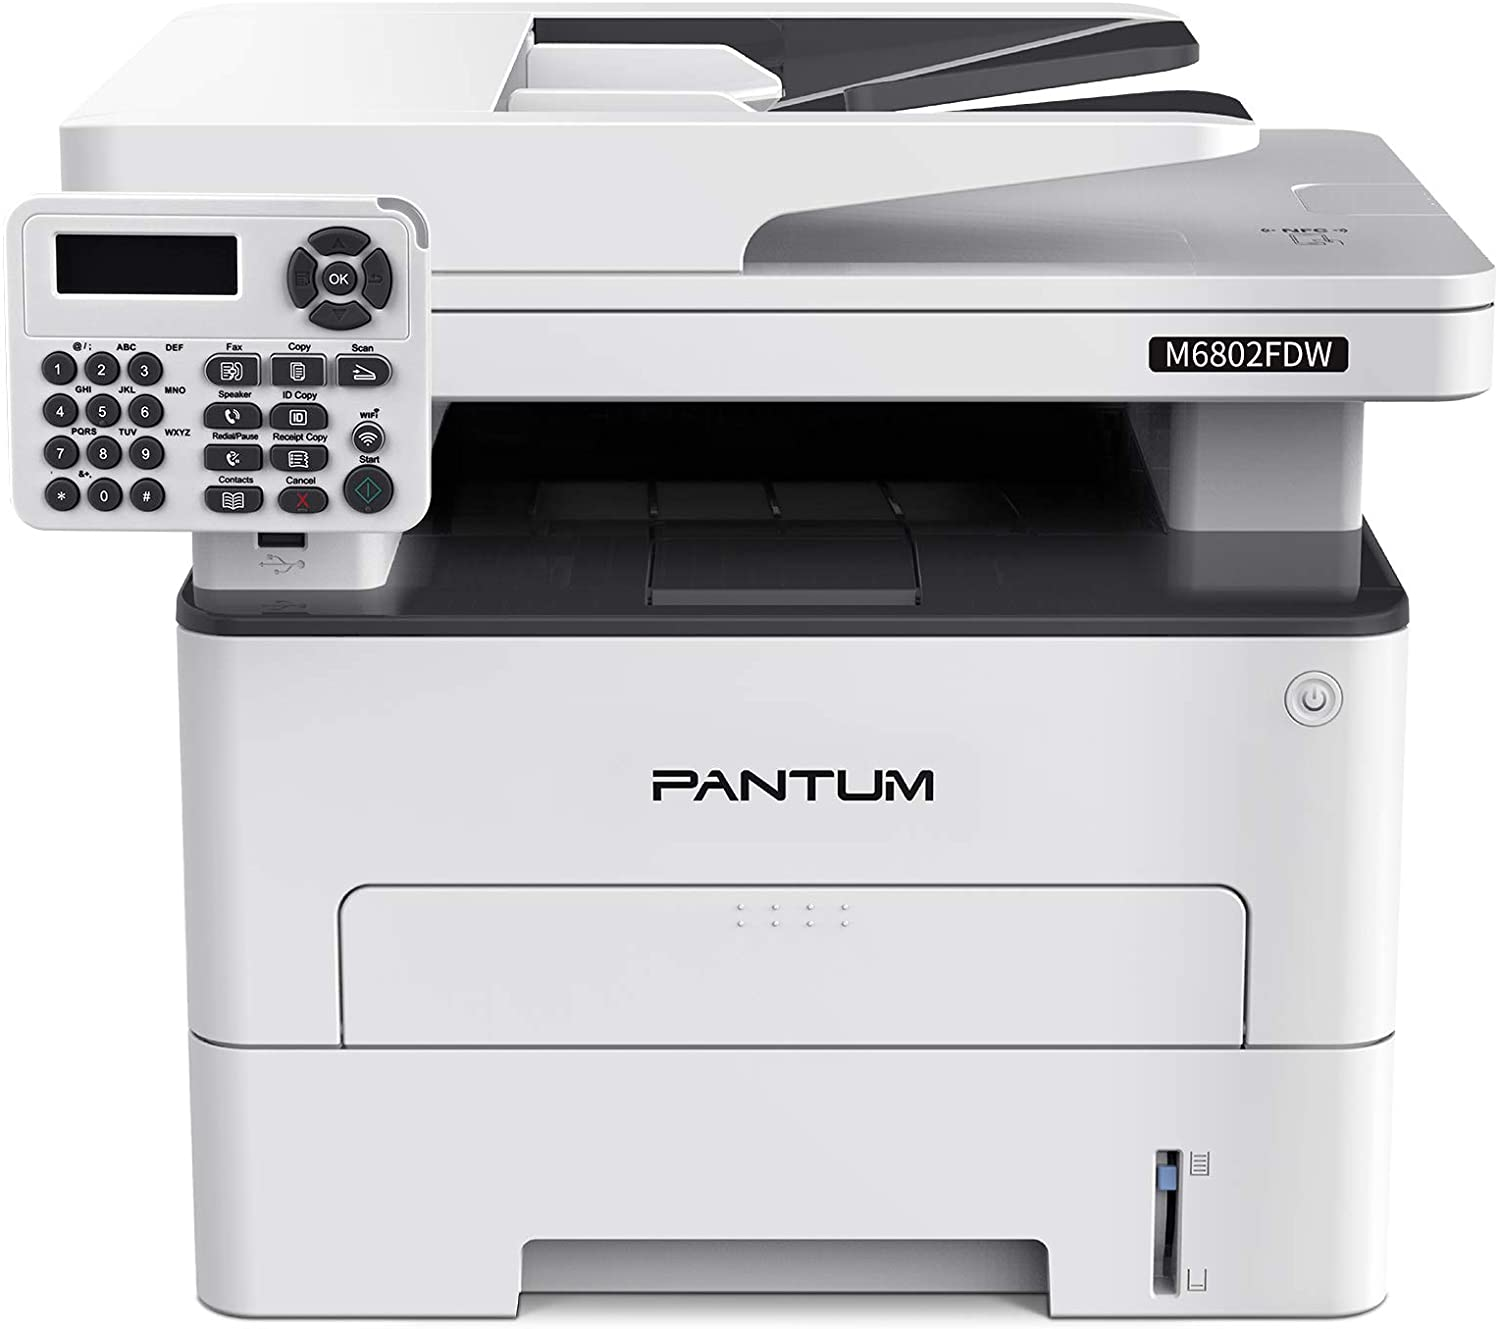 Save $30 on Pantum M6802FDW Wireless Laser Printer Scanner